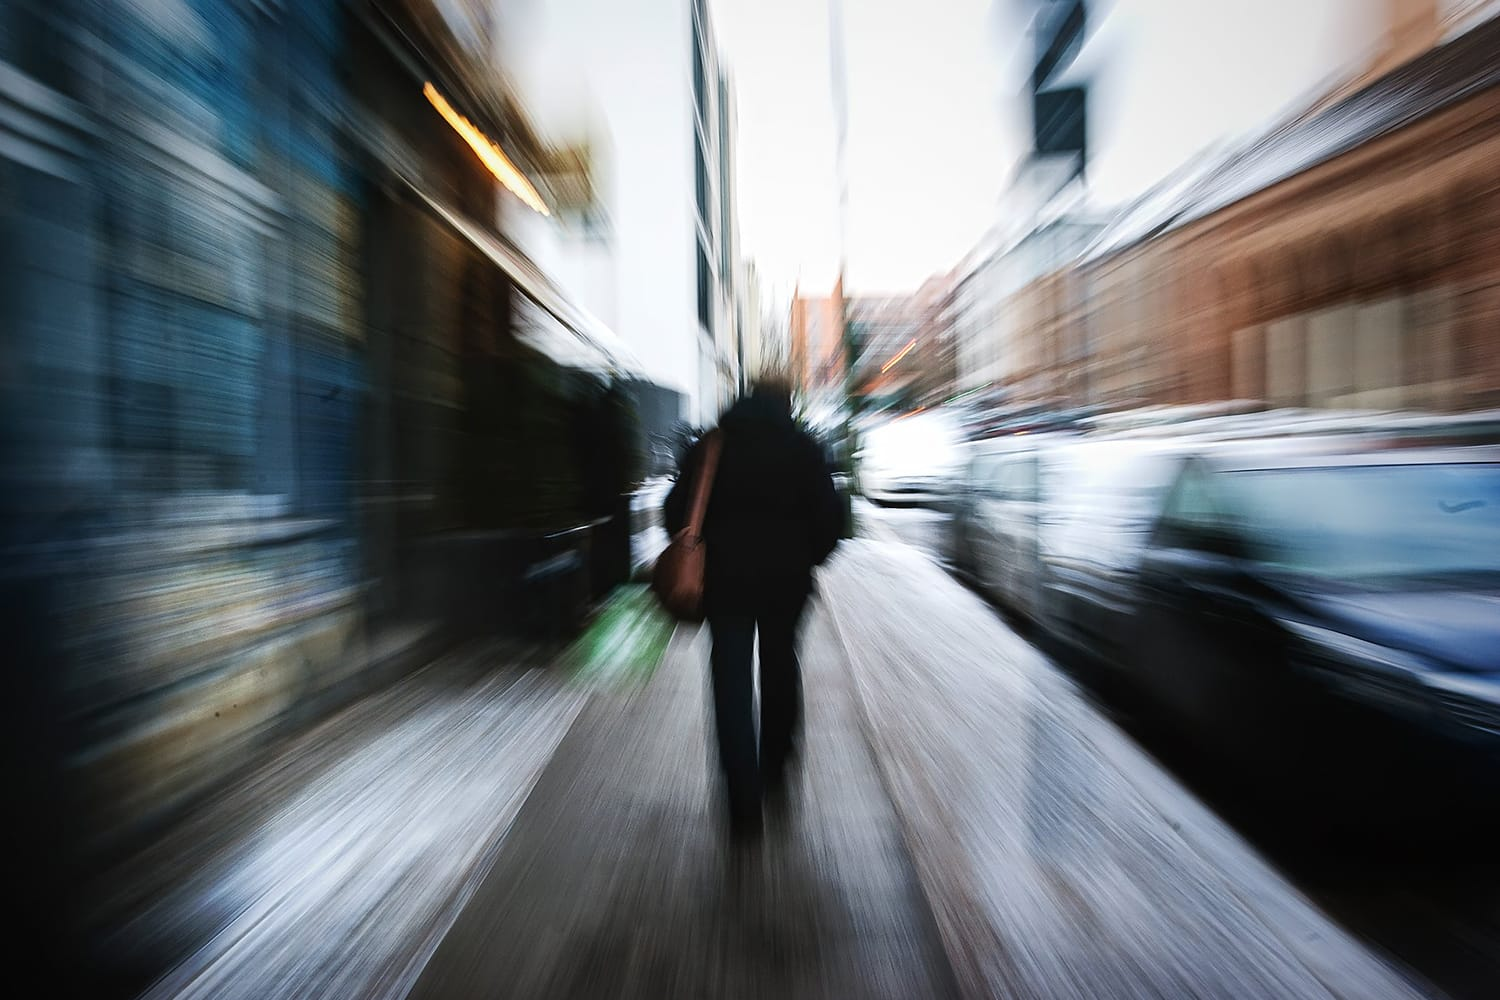 How to Master Zoom Blur Photography